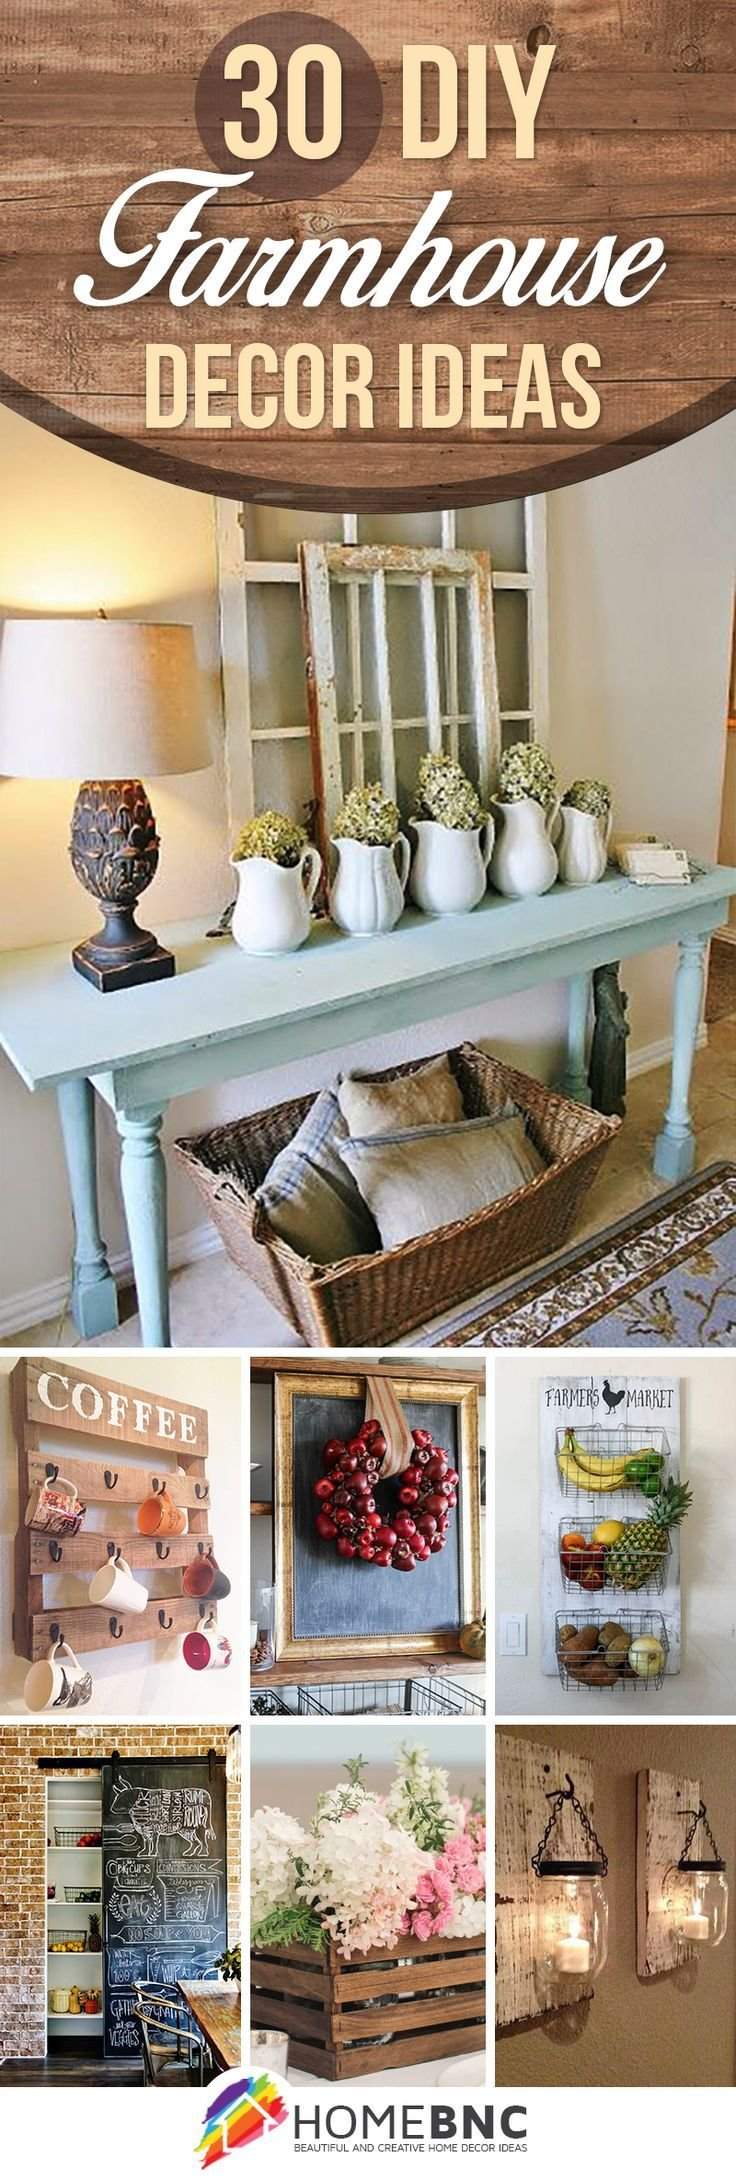 Best 25 Recycled Home Decor Ideas On Pinterest Diy With Pictures